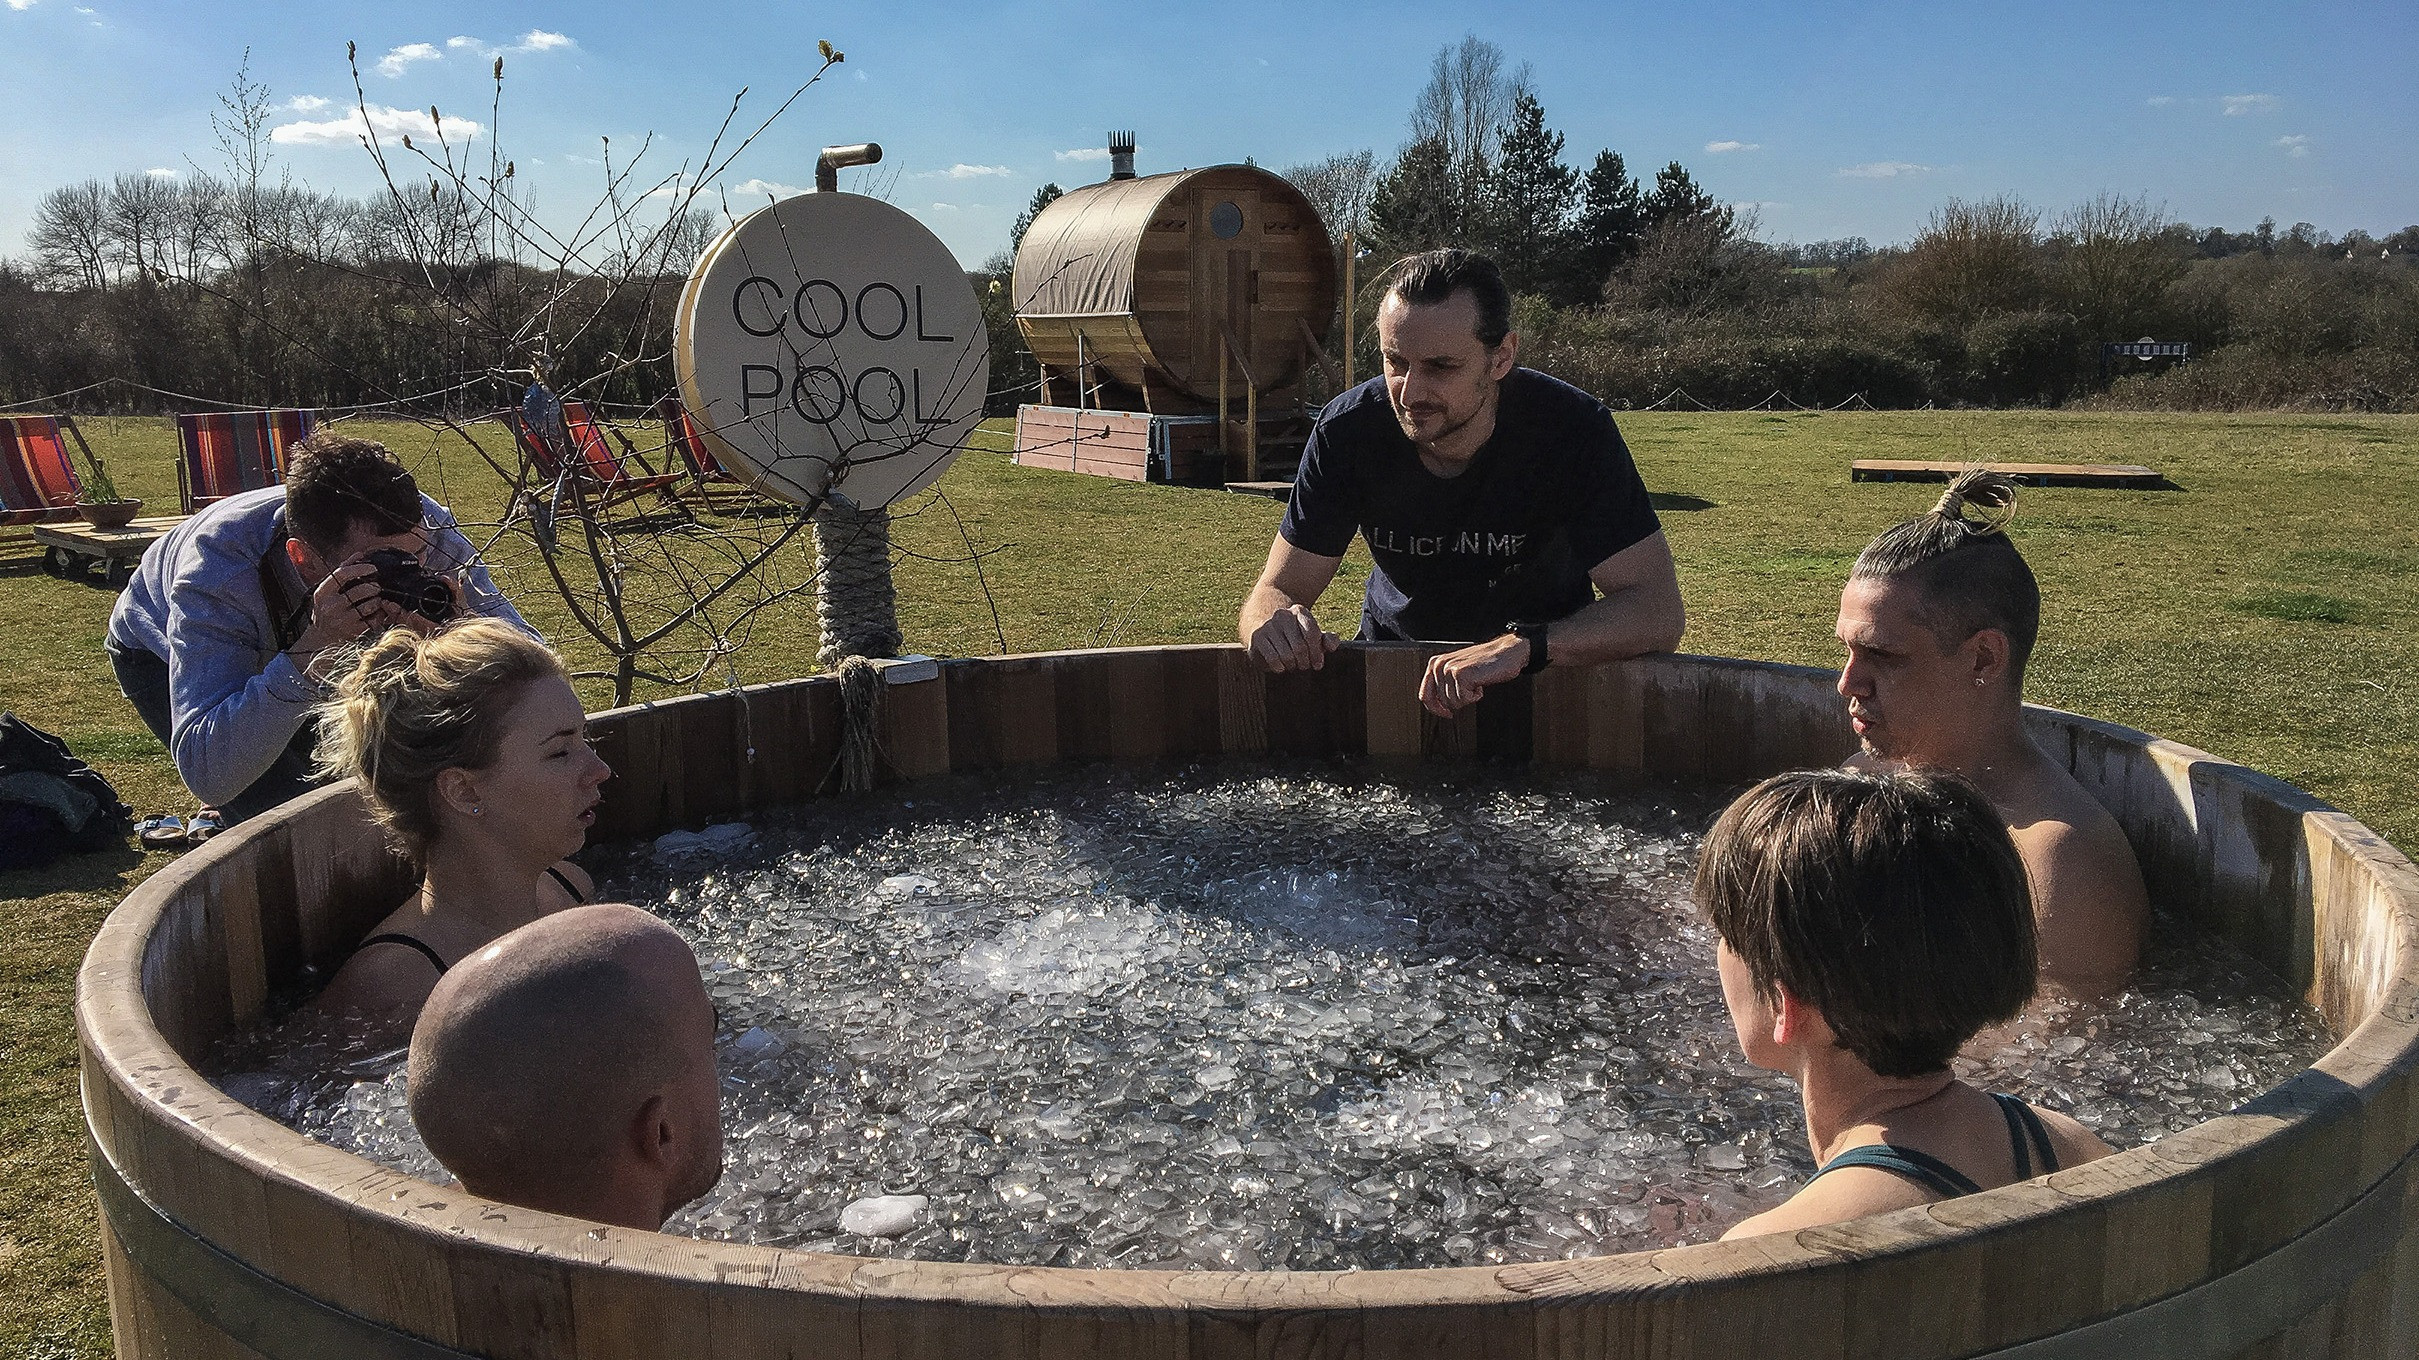 Image 3 of 11 - Experience the Wim Hof Method to get an impression of  at